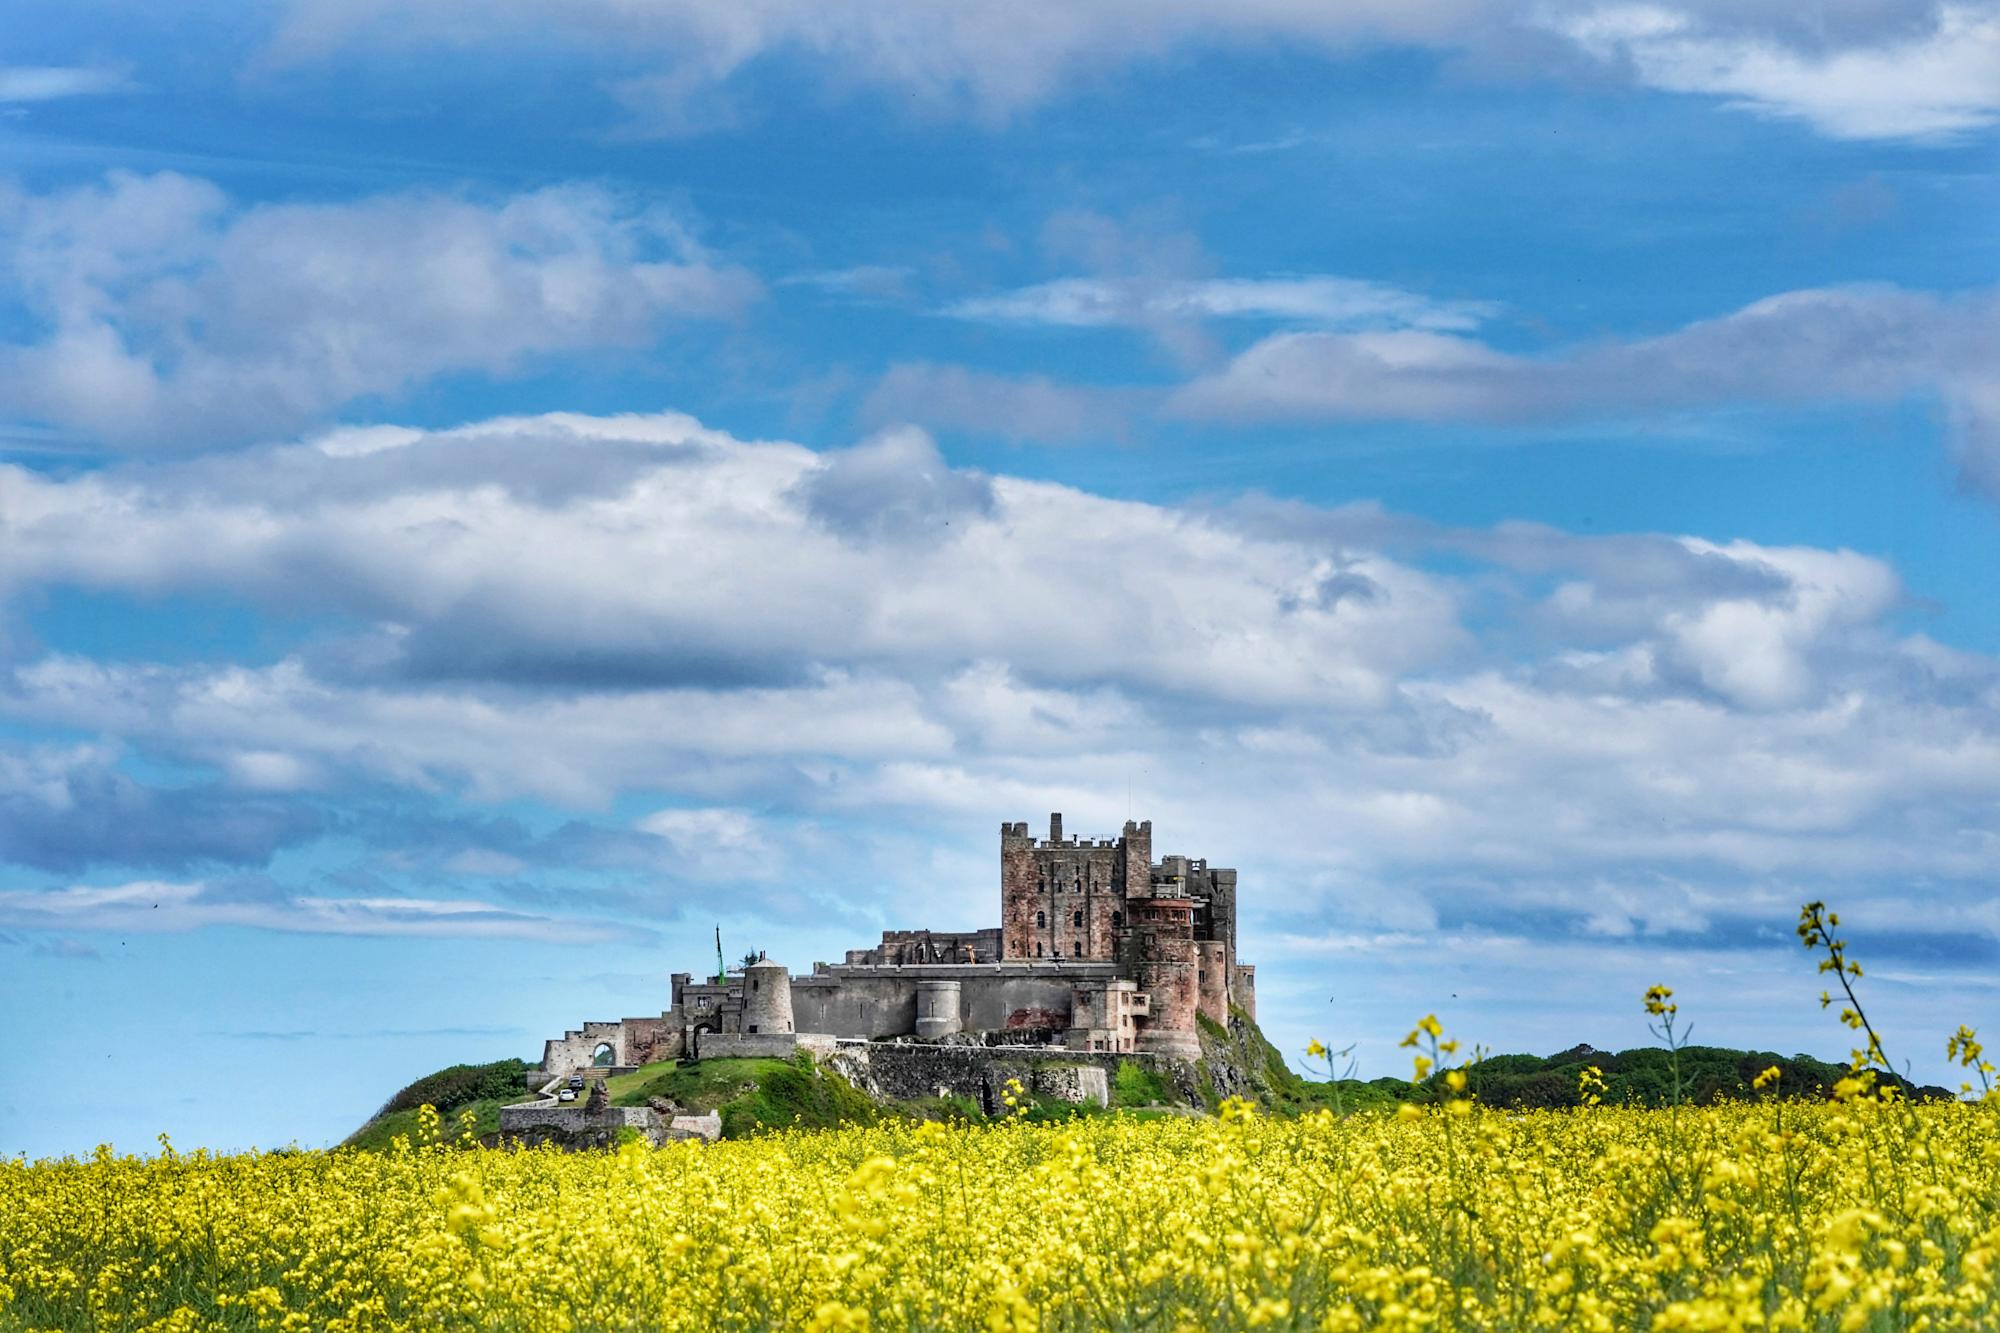 These are the most beautiful spots to visit in the north of England